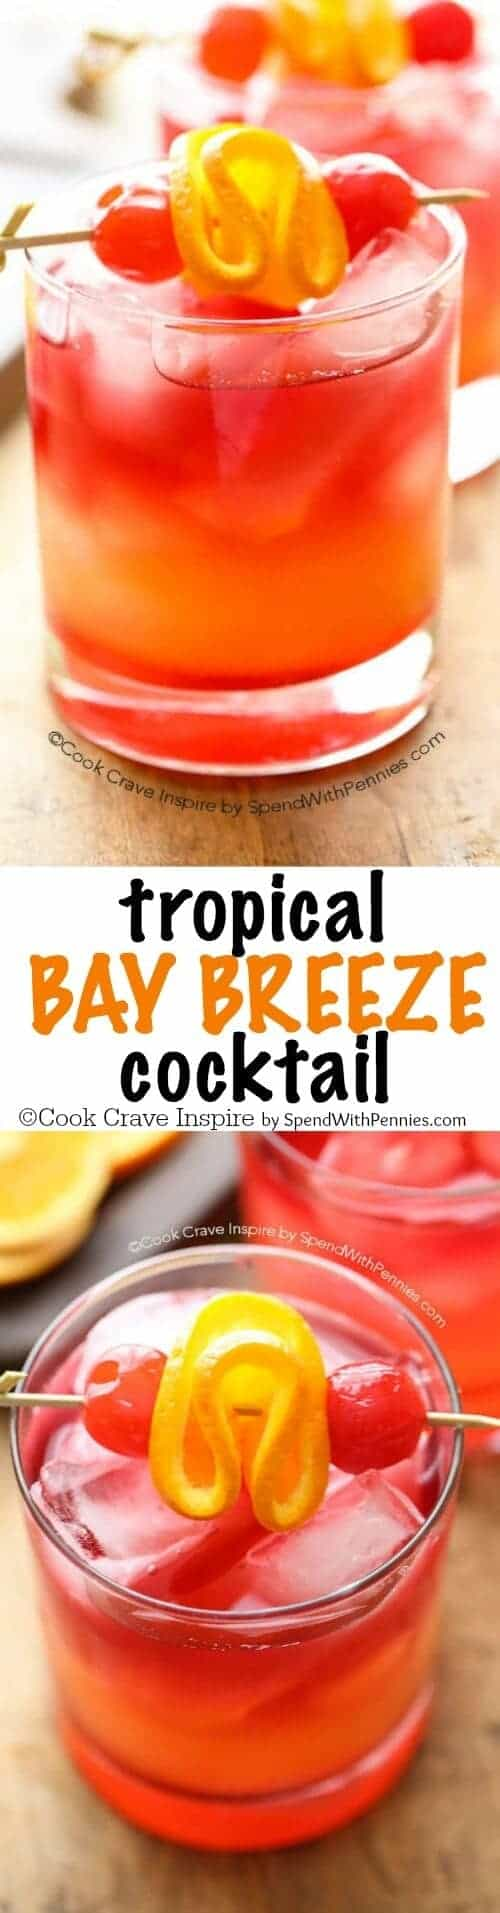 Tropical Bay Breeze Cocktail with a title